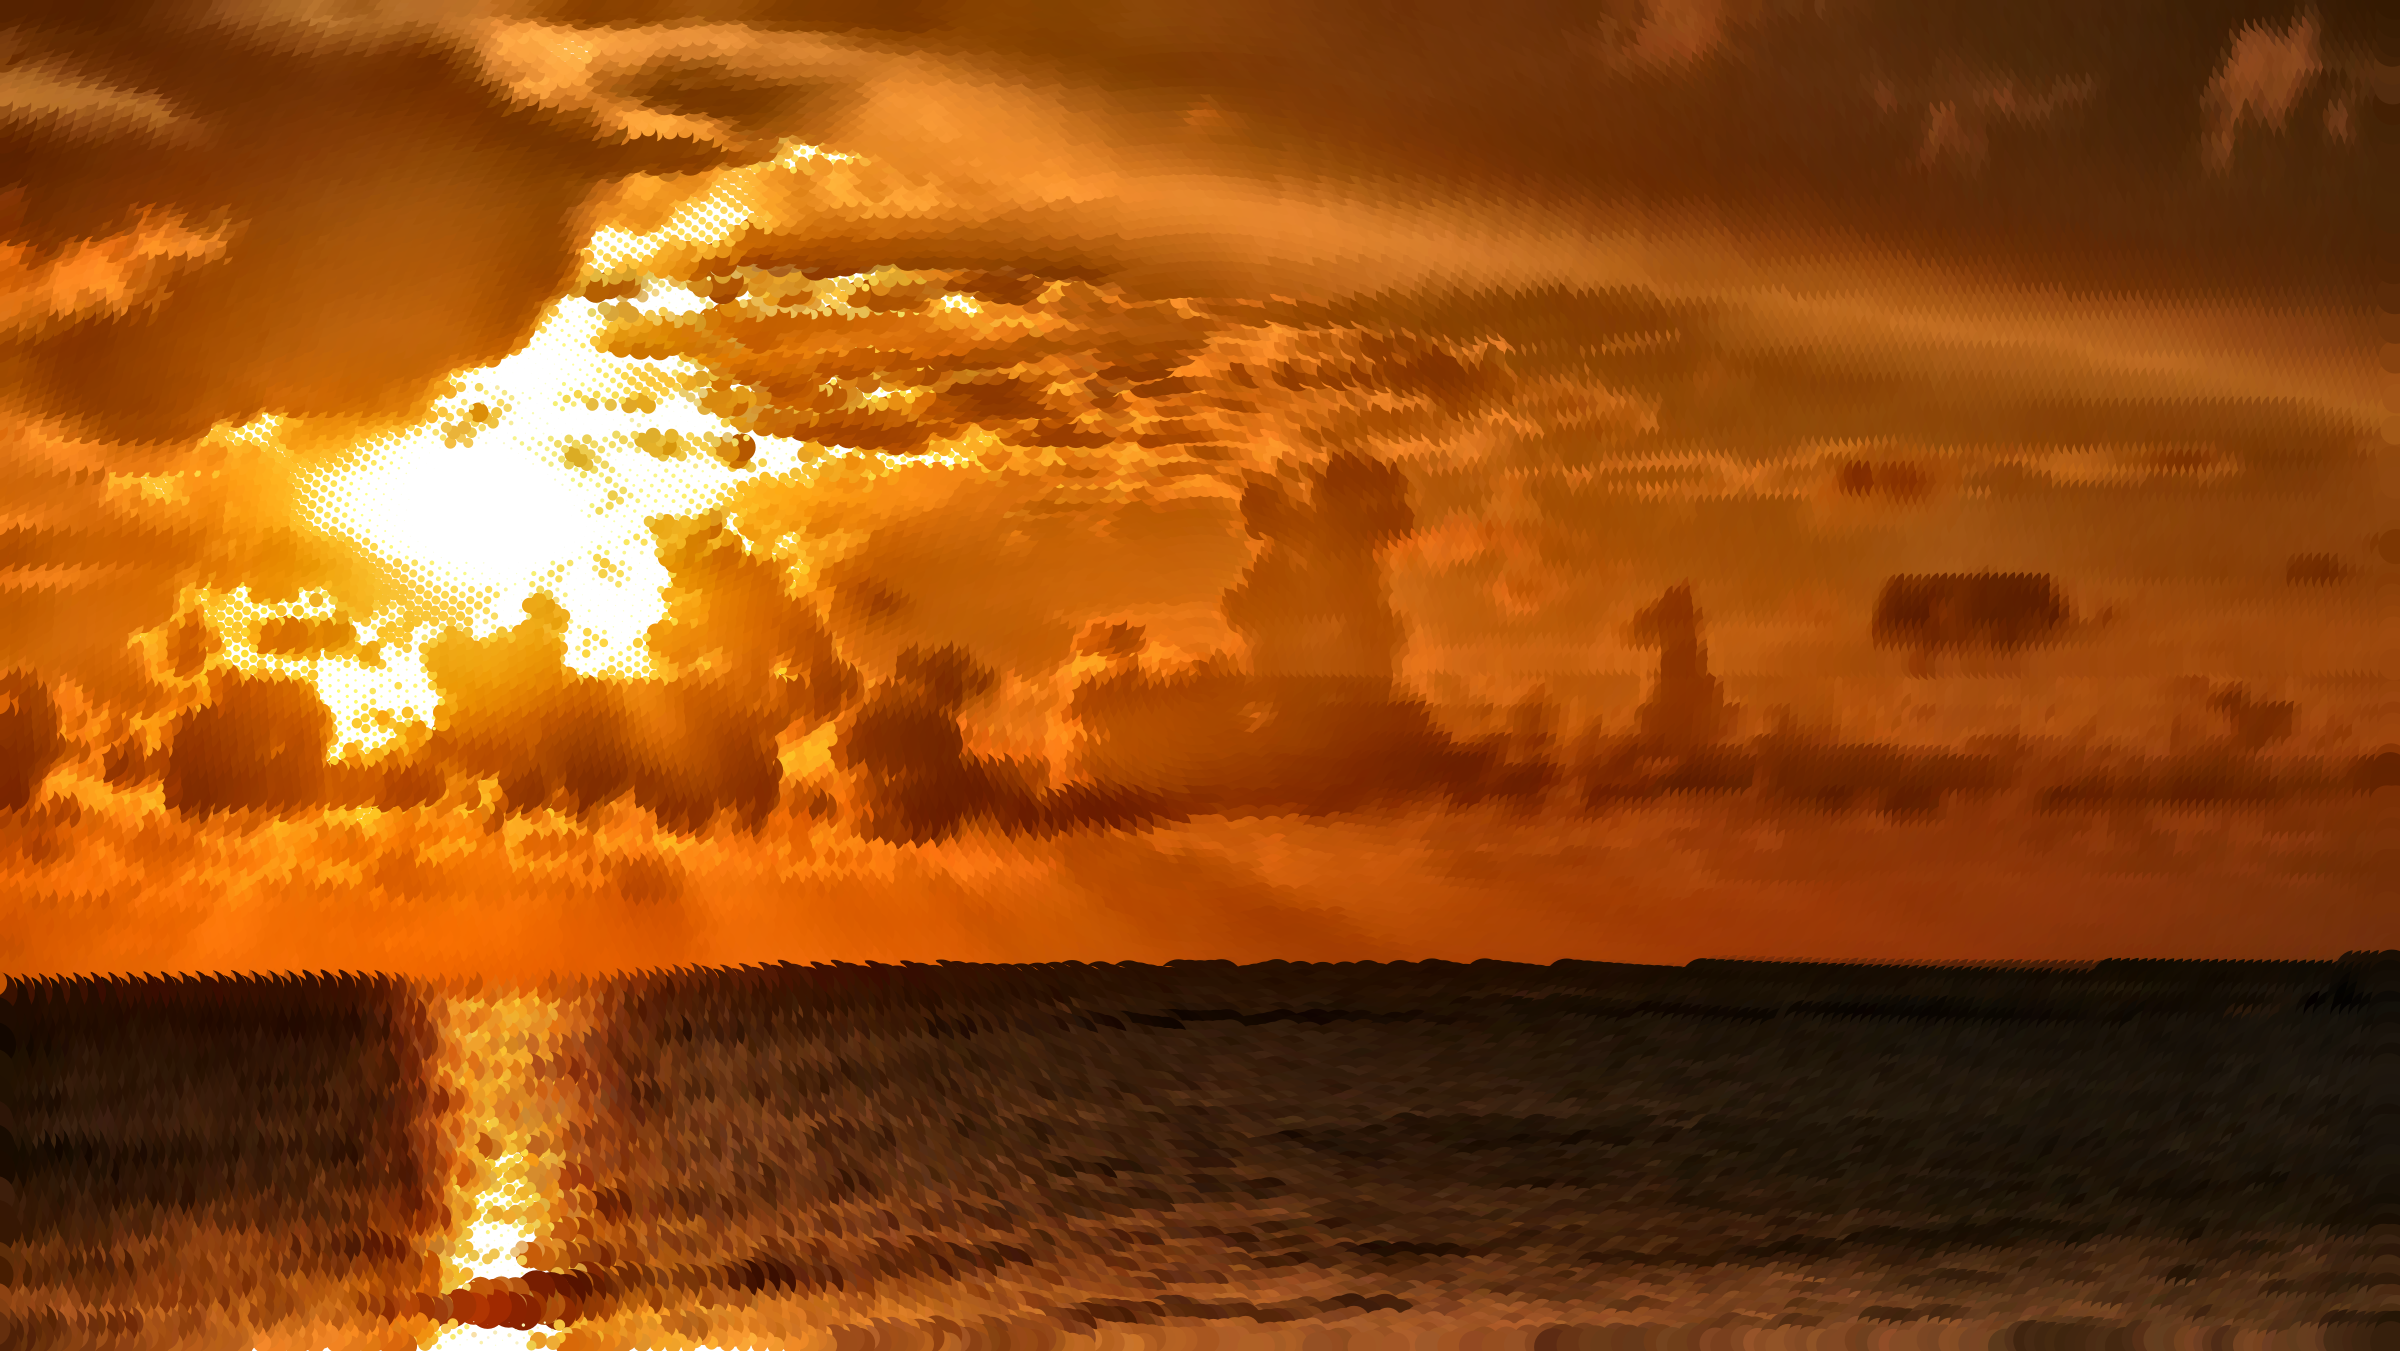 Surreal Golden Sunset by GDJ